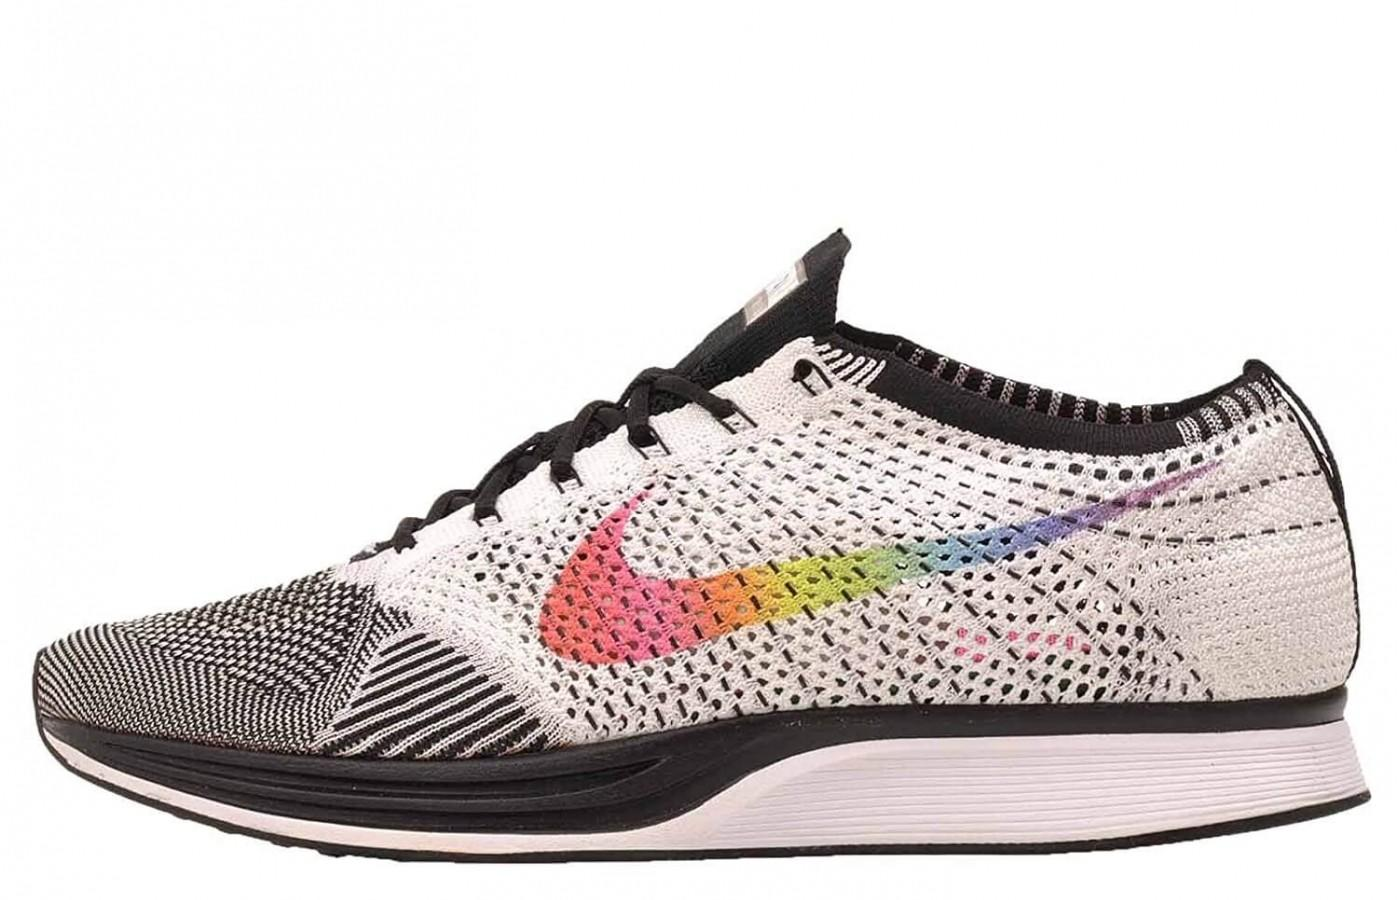 the Nike Flyknit Race Betrue is a lightweight unisex shoe ...